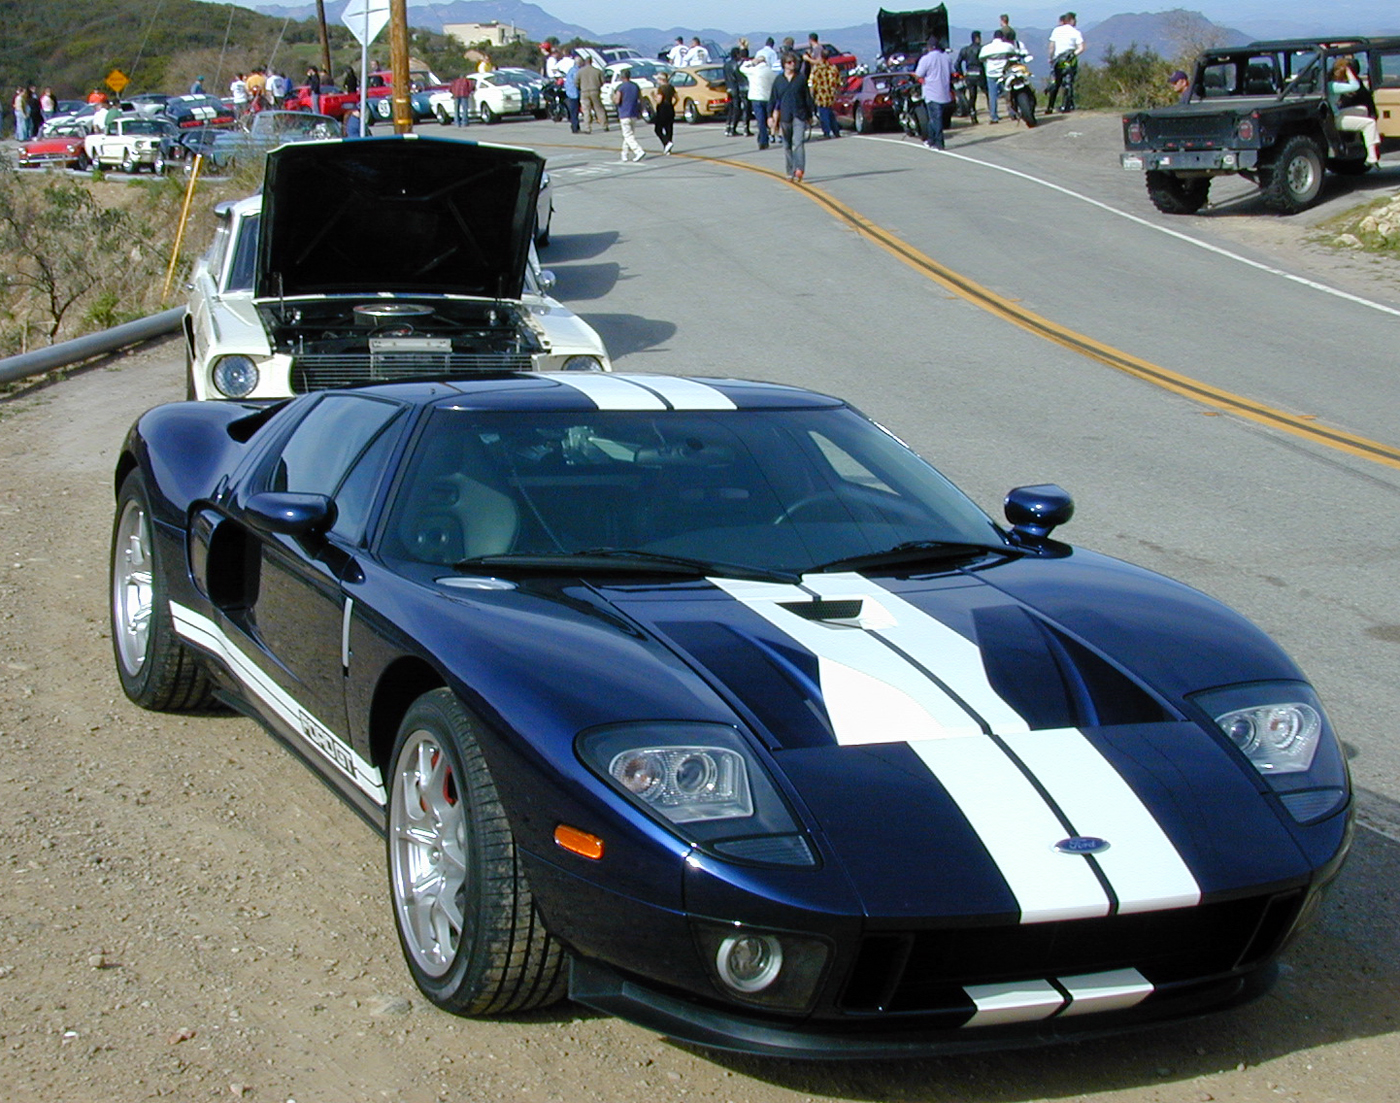 2005 Ford GT SAAC Rally Cars